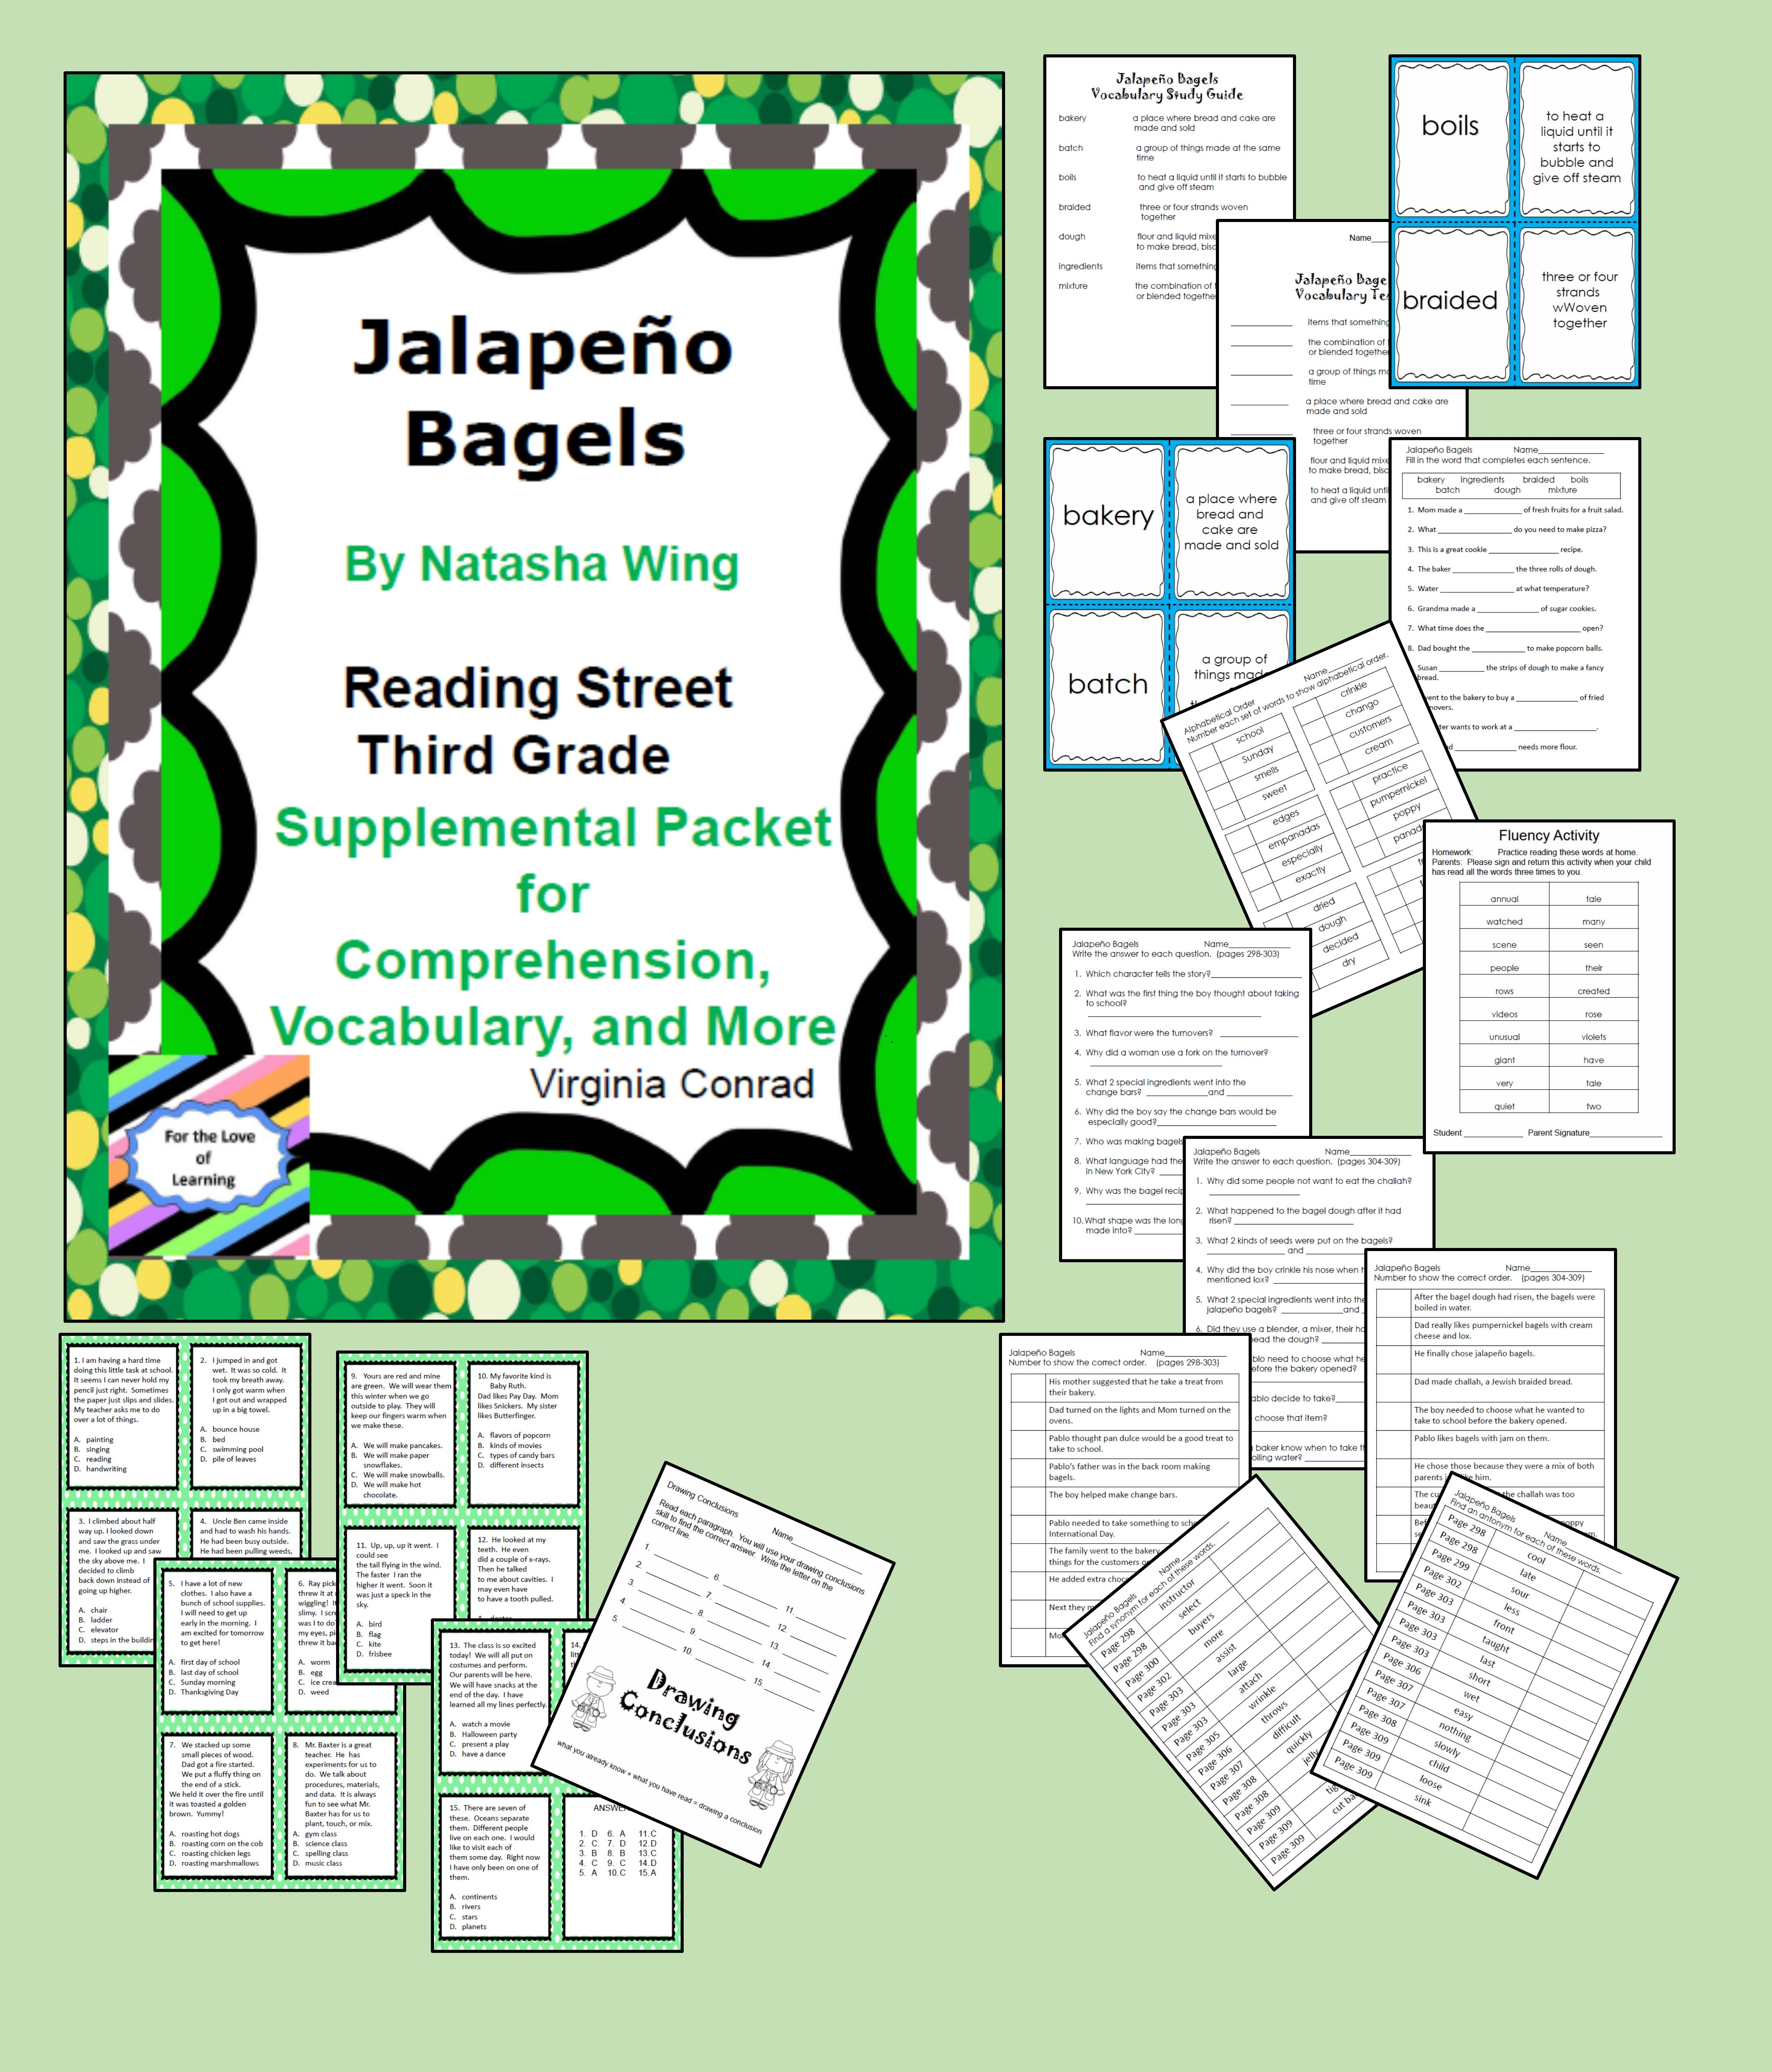 Jalapeno Bagels Supplemental Packet Reading Street Third